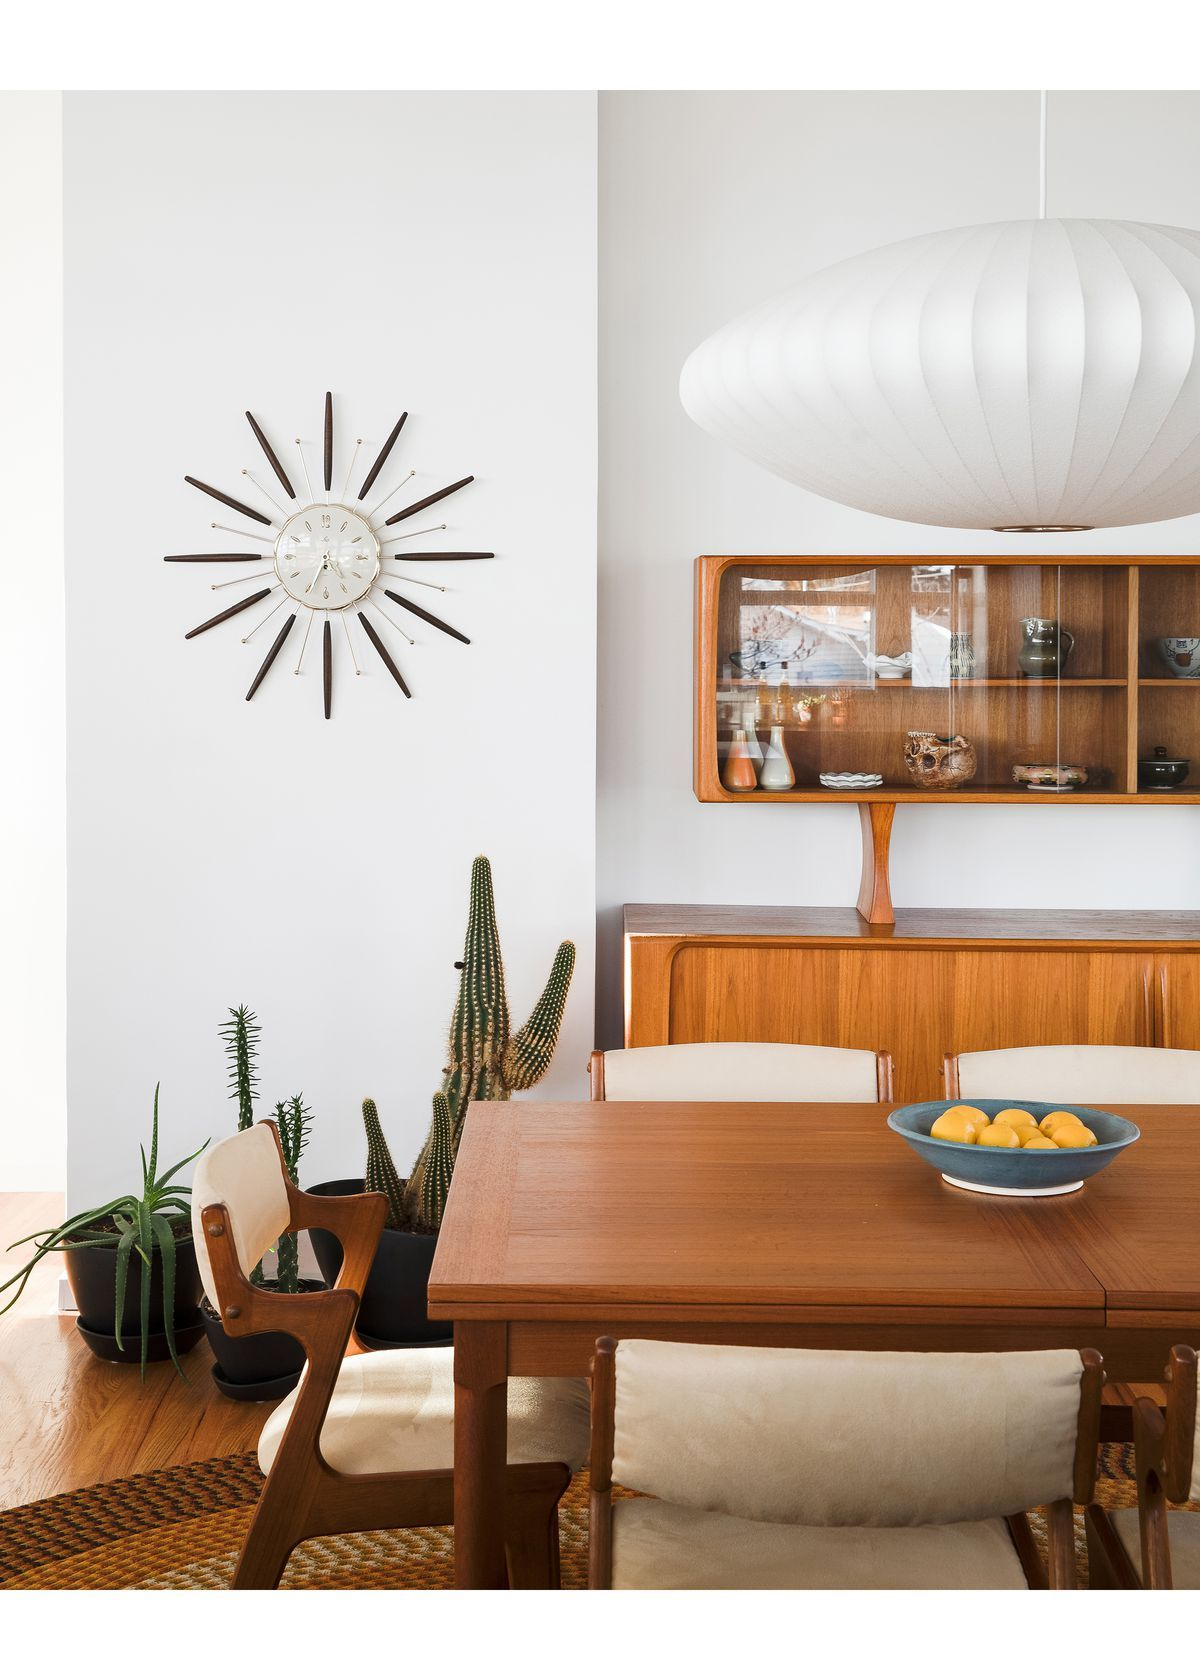 A Midcentury Time Capsule With An 80s Flair Gets A Modern Update